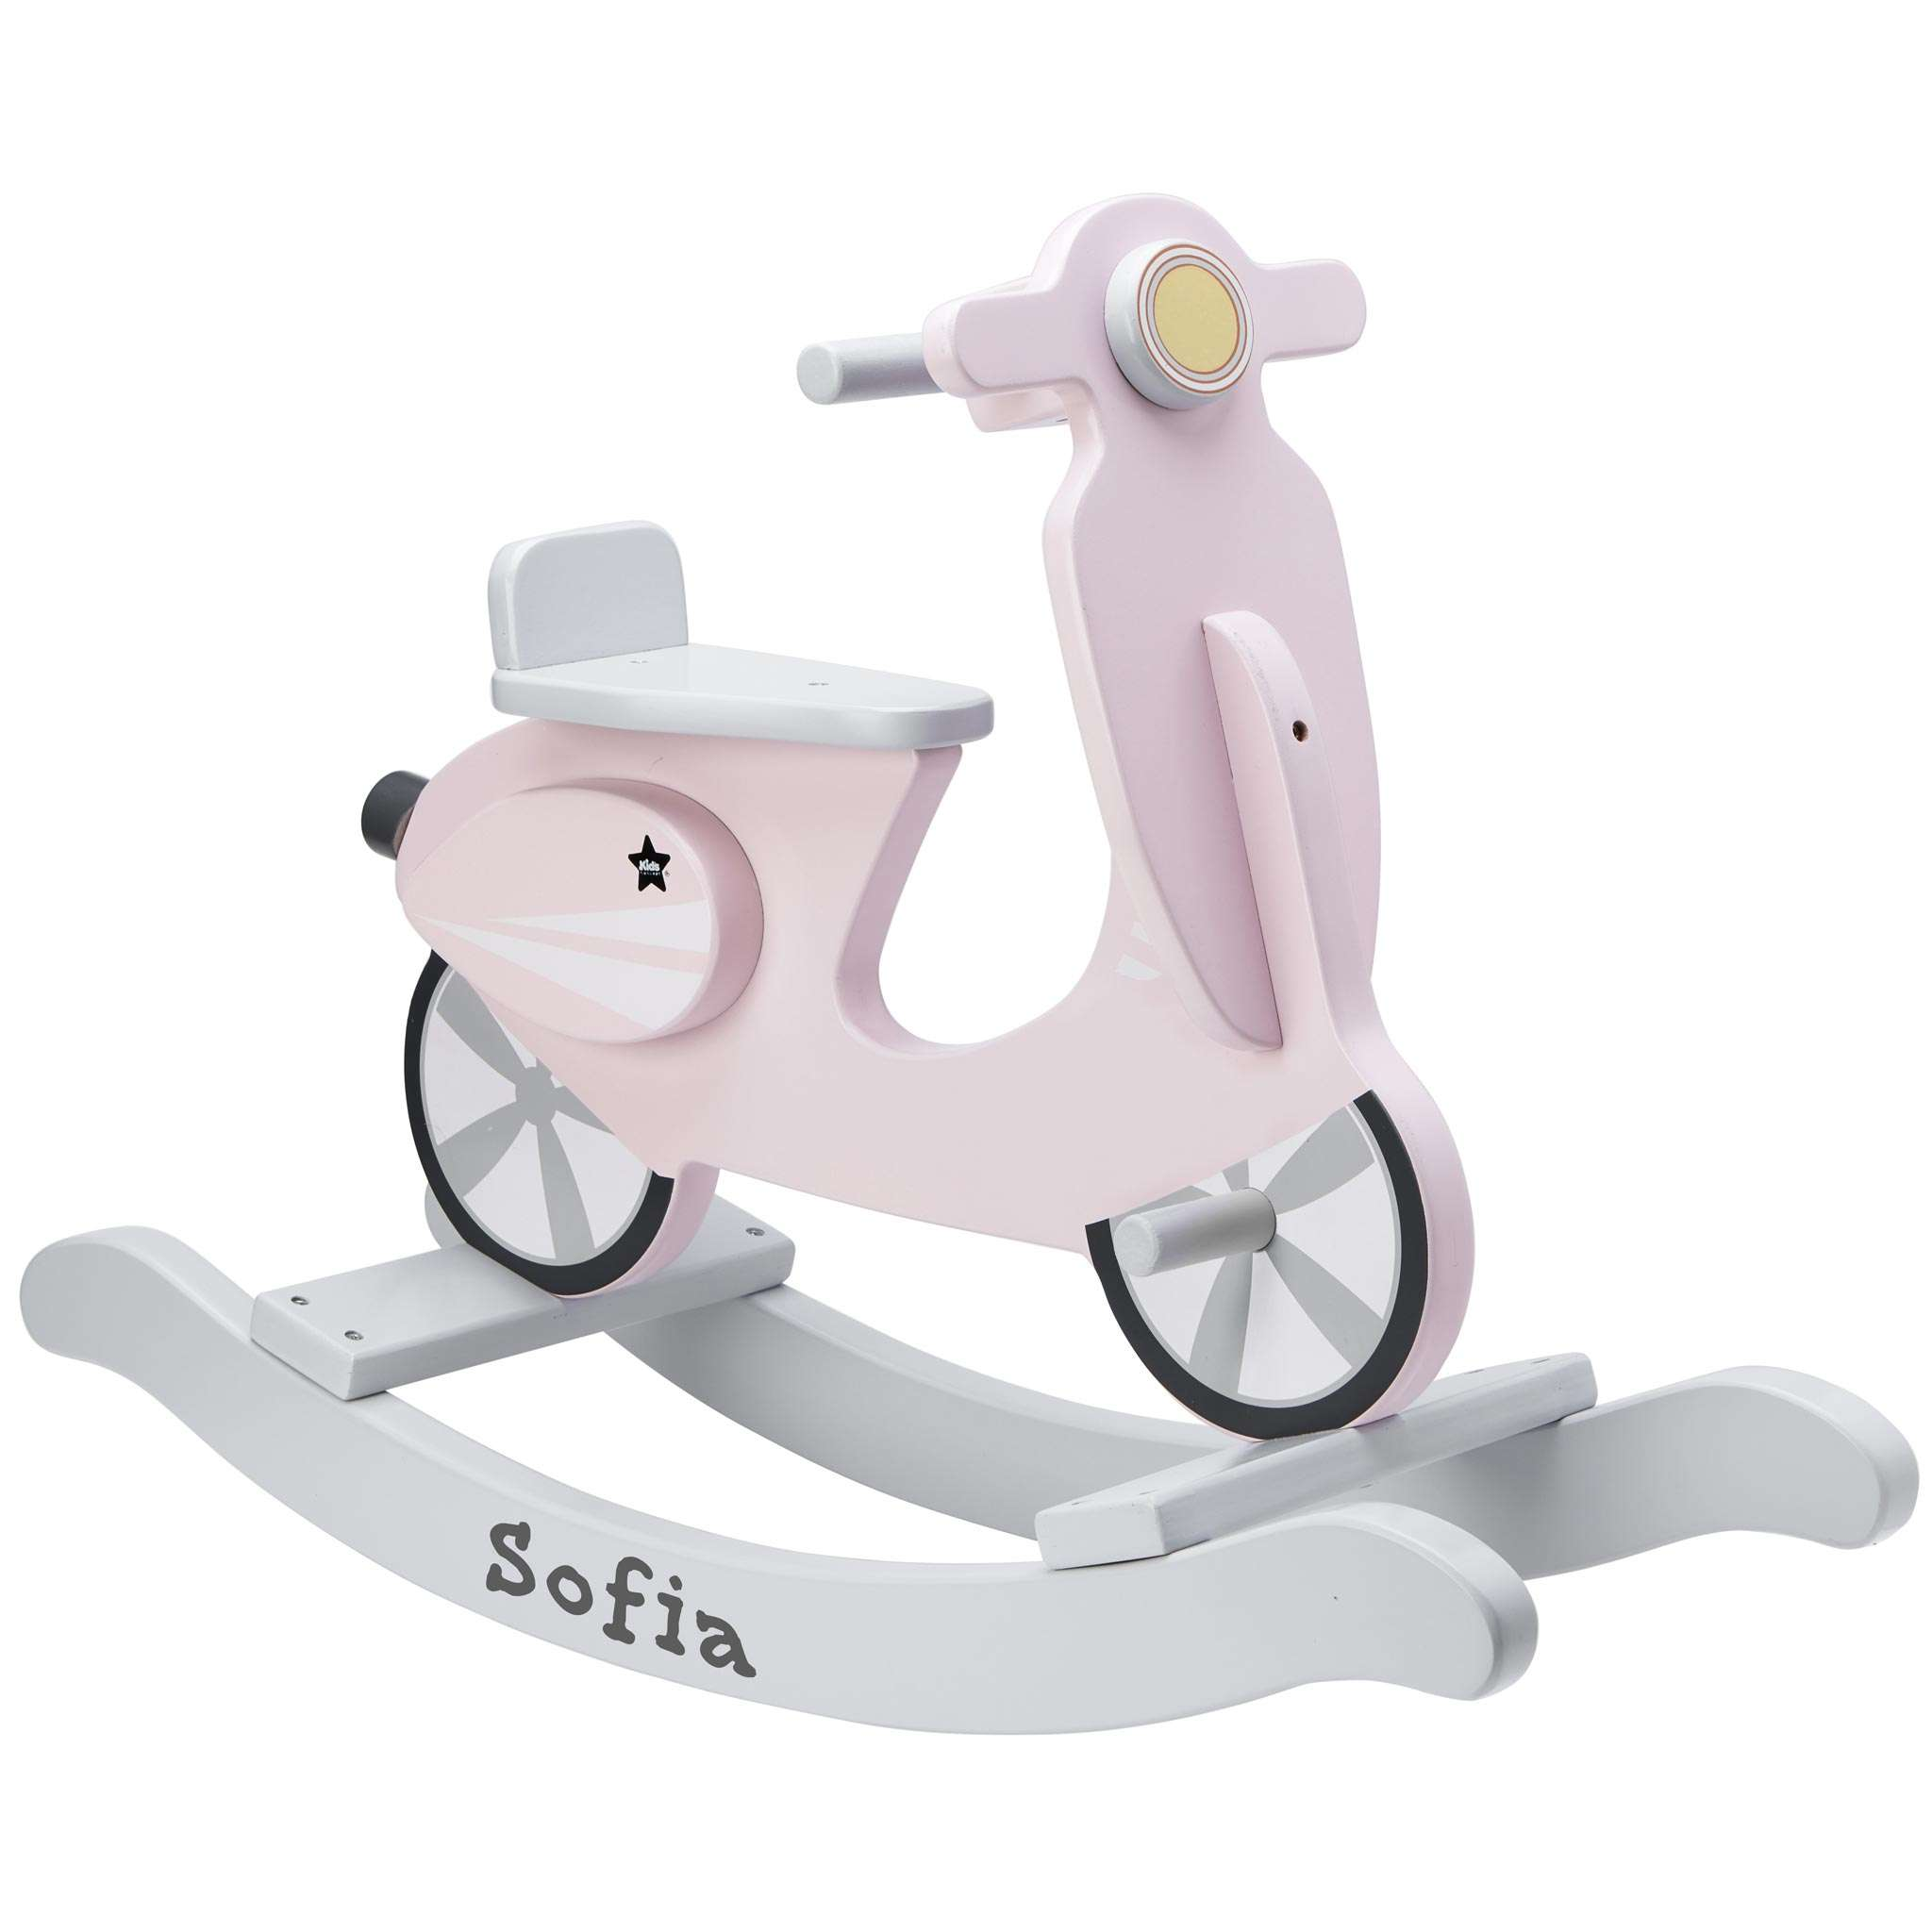 Gyngescooter rosa